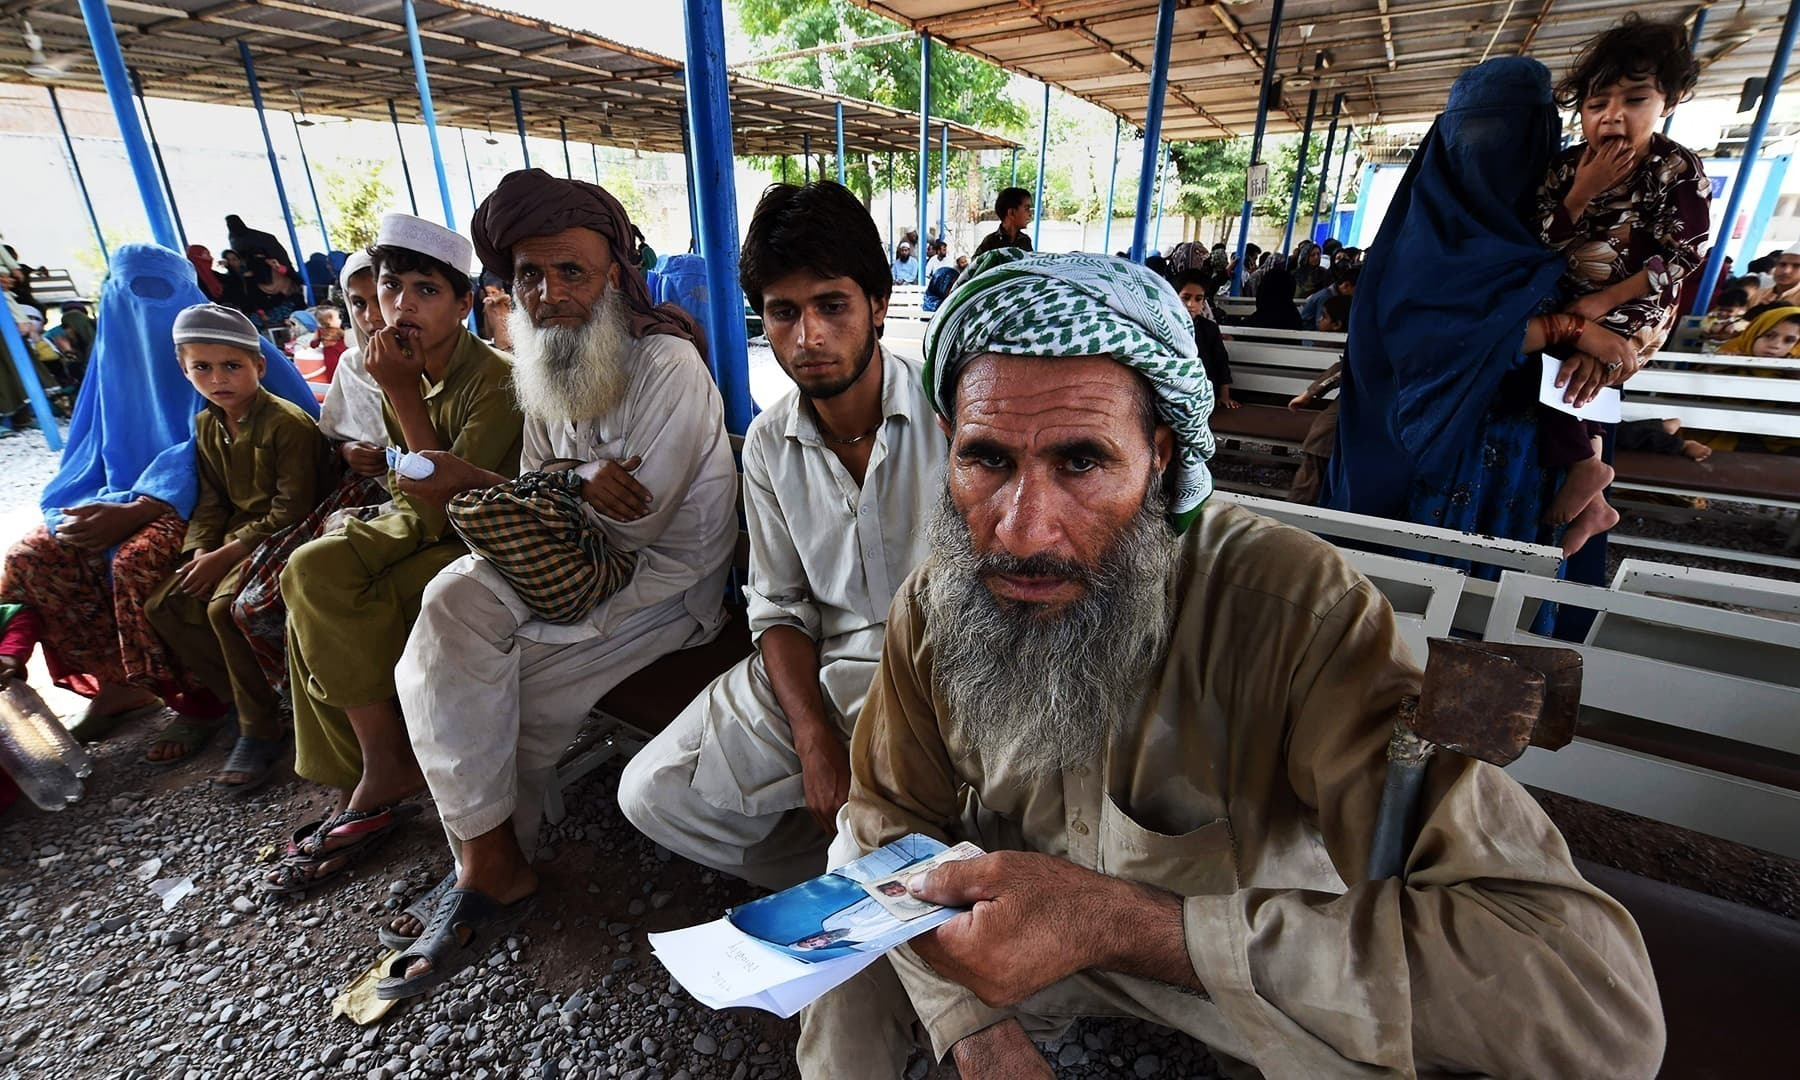 The European Commission (EC) has allocated an additional 40 million euros in emergency assistance for those affected by the worsening humanitarian situation in Afghanistan, as well as for Afghan refugees in Pakistan and Iran. — AFP/File